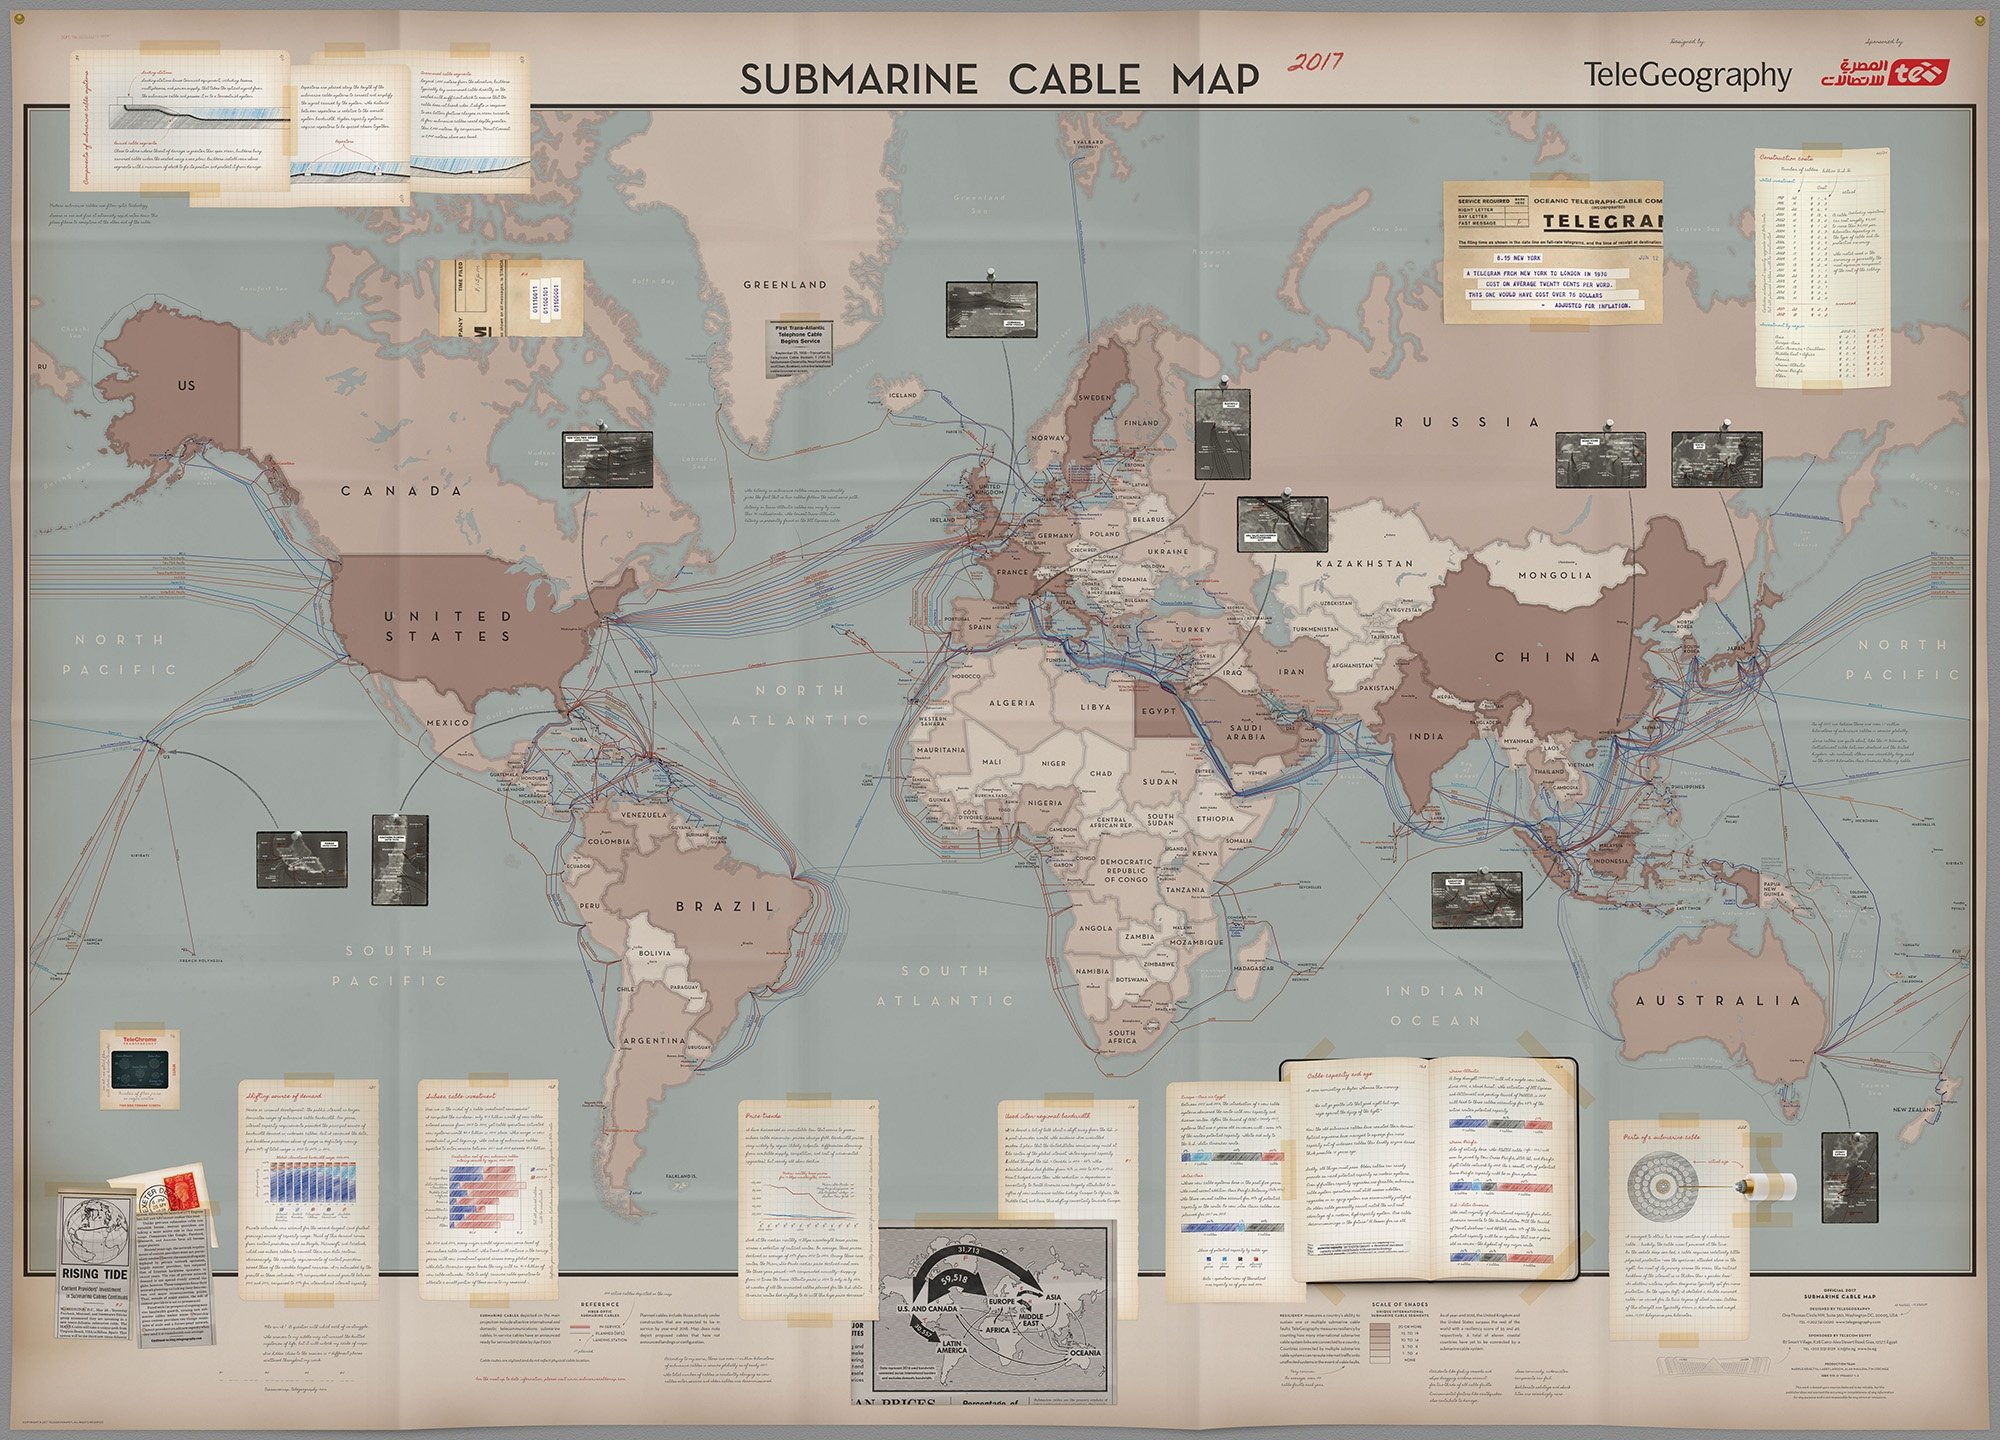 Submarine_Cable_Map_2017_2000px.jpg